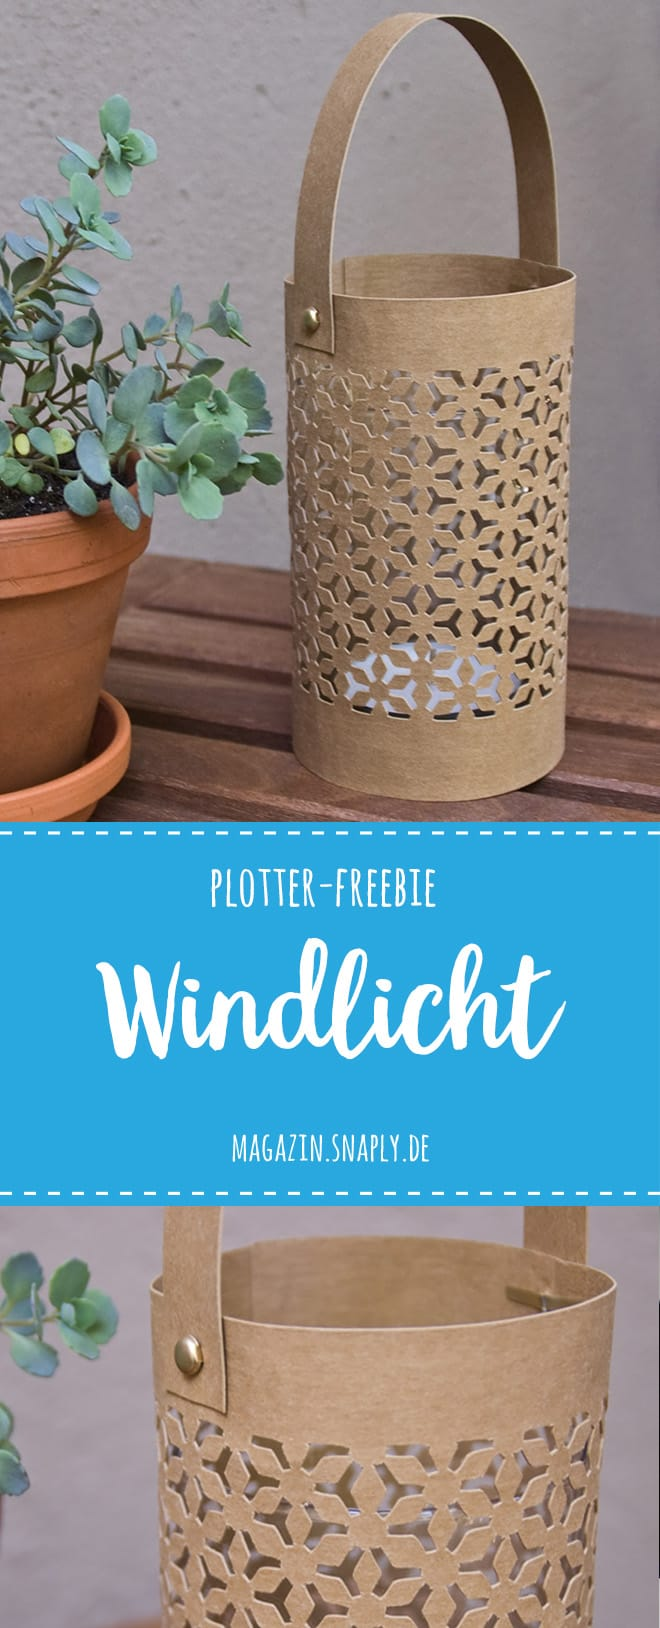 Plotter-Freebie: Windlicht aus SnapPap | Snaply-Magazin